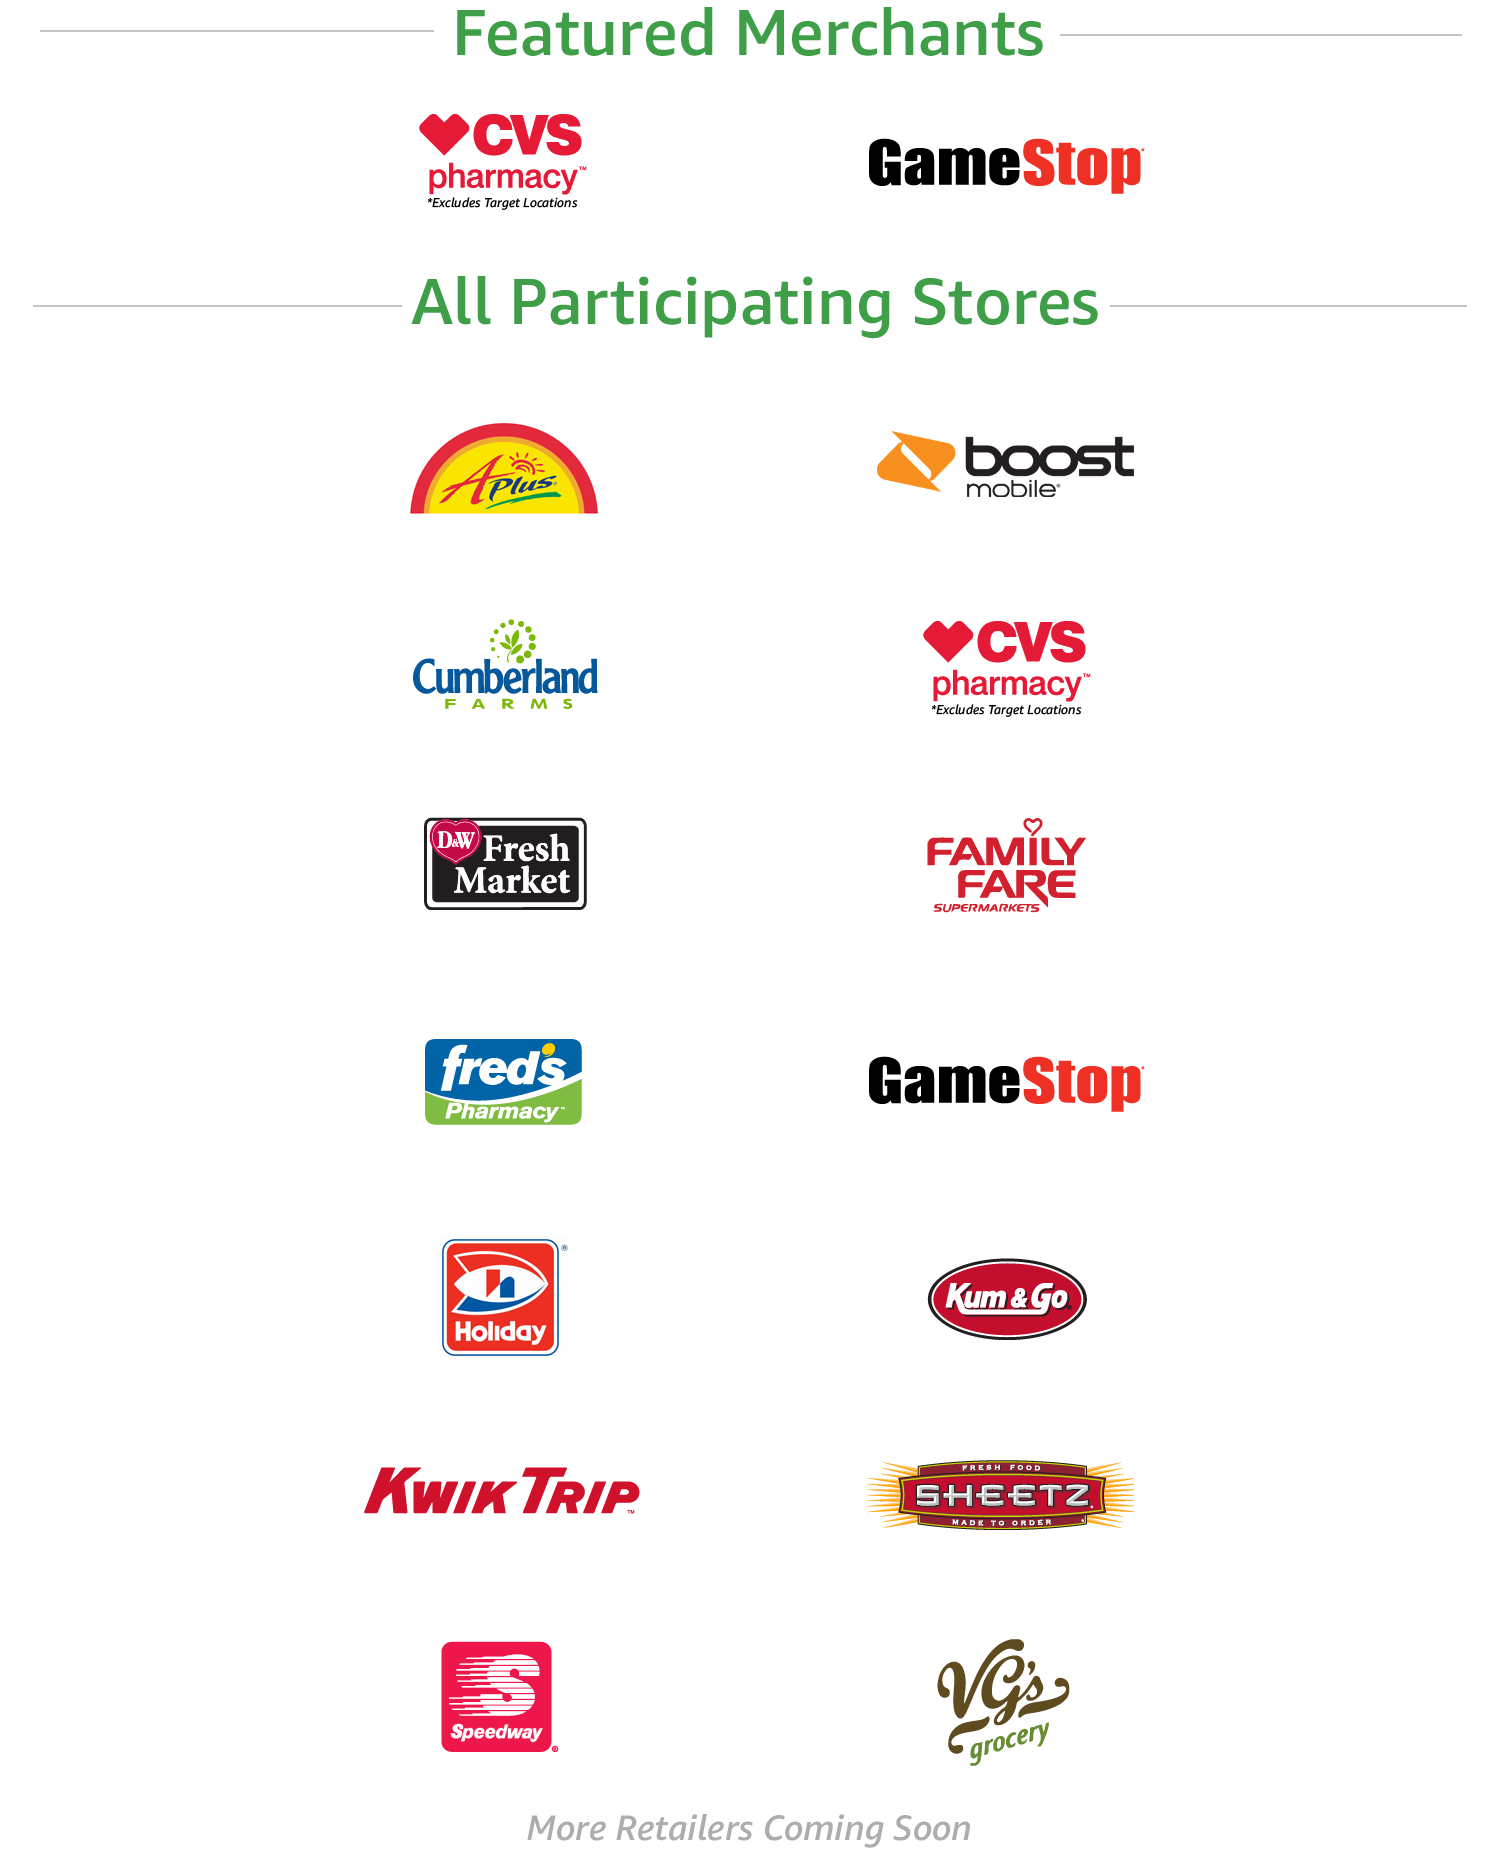 Amazon Cash Participating Stores | APlusCVS pharmacy, GameStop, Cumberland Farms, D&W Fresh Market, Family Fare Supermarkets, Fred's Pharmacy, Holiday, Kum & Go, Kwik Trip, Sheetz, Speedway, VG's grocery | More retailers coming soon